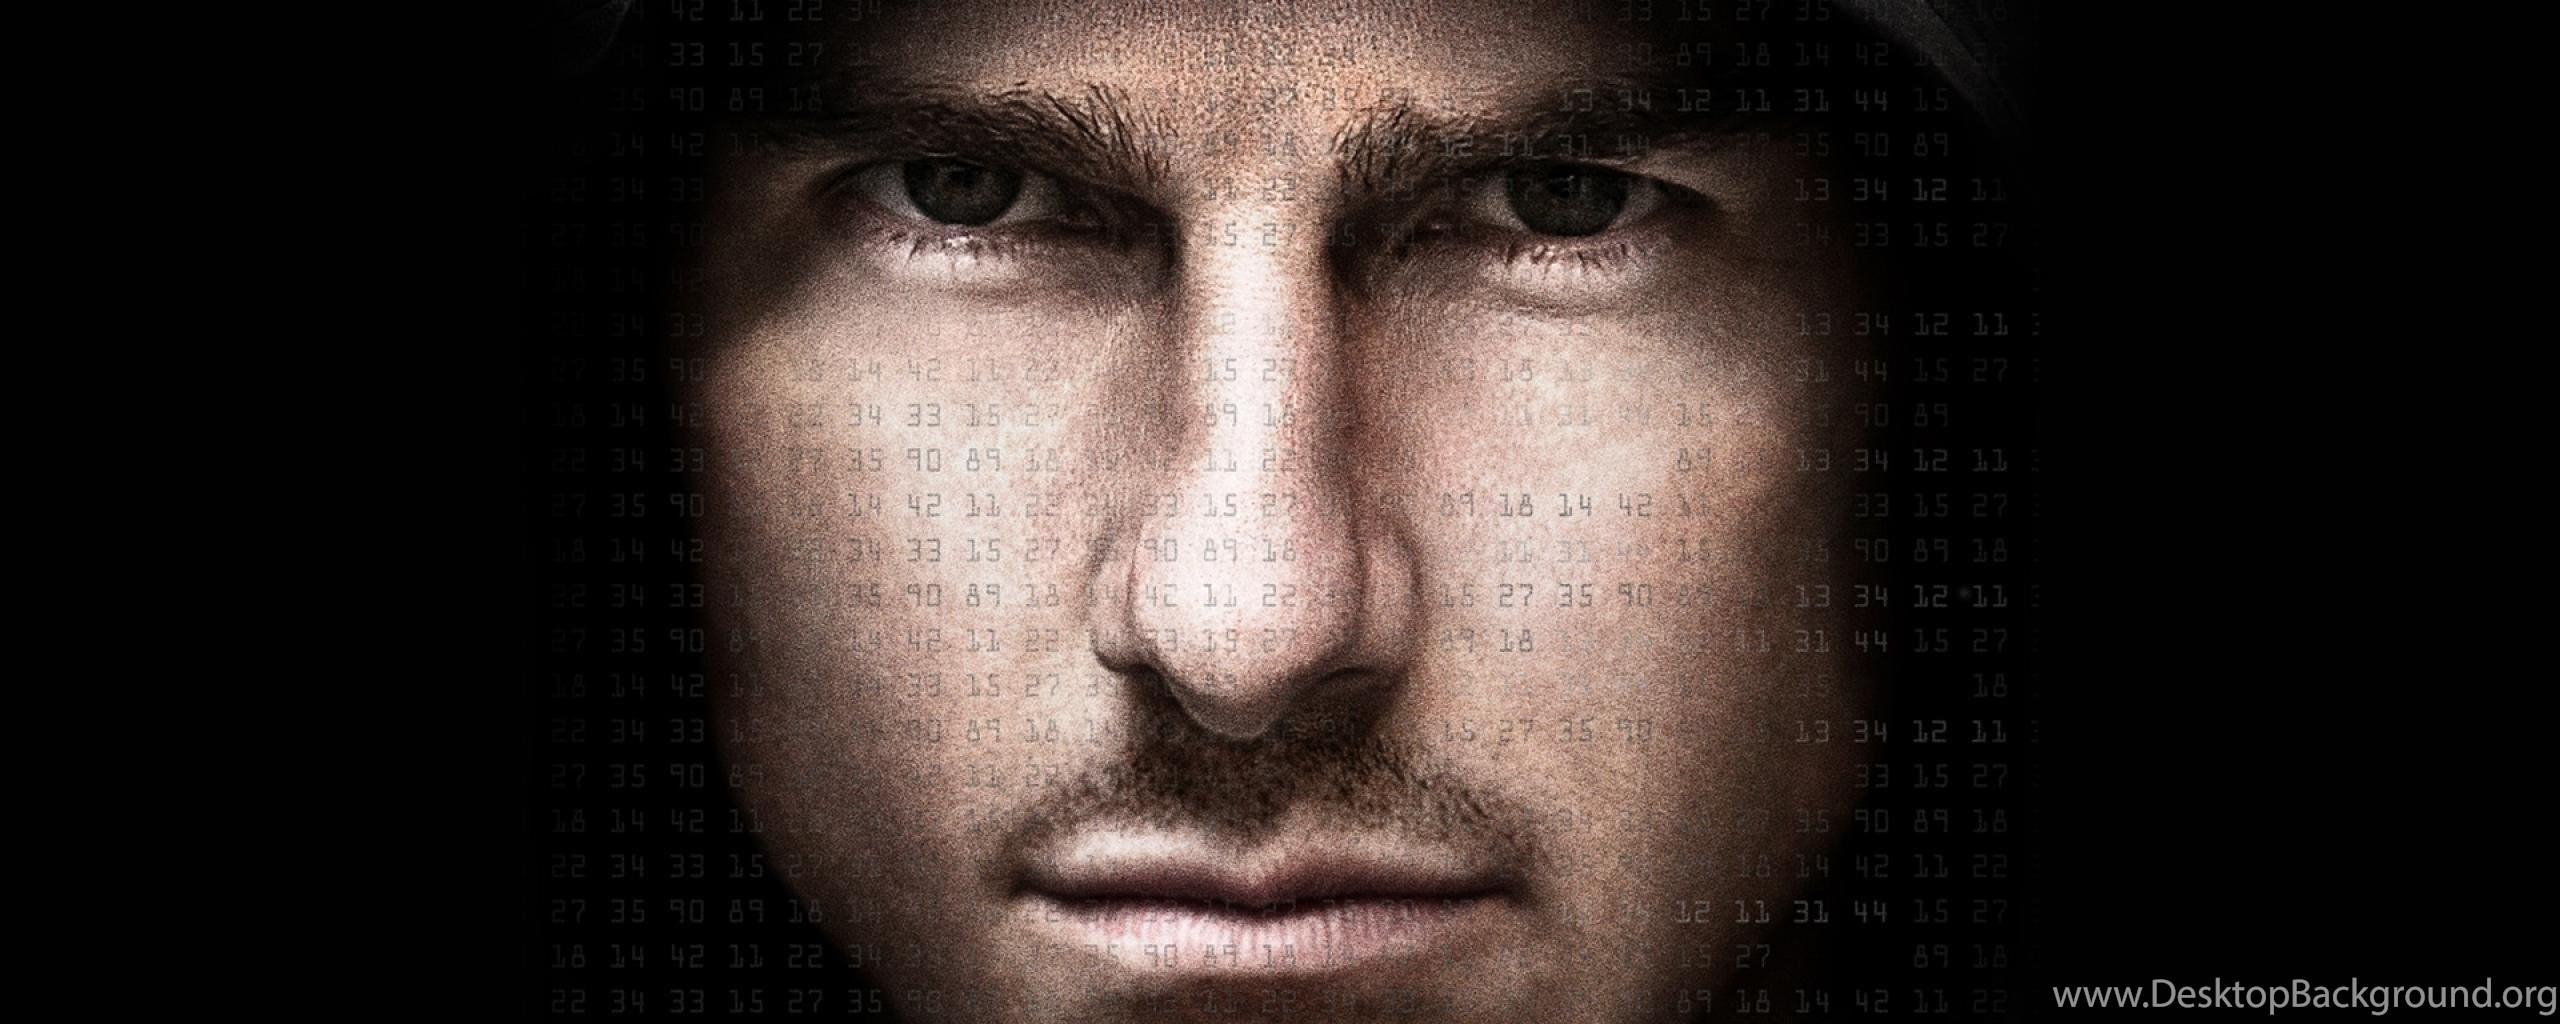 Tom Cruise Mission Impossible 4 Wallpapers Hd 1 Jpeg Desktop Background